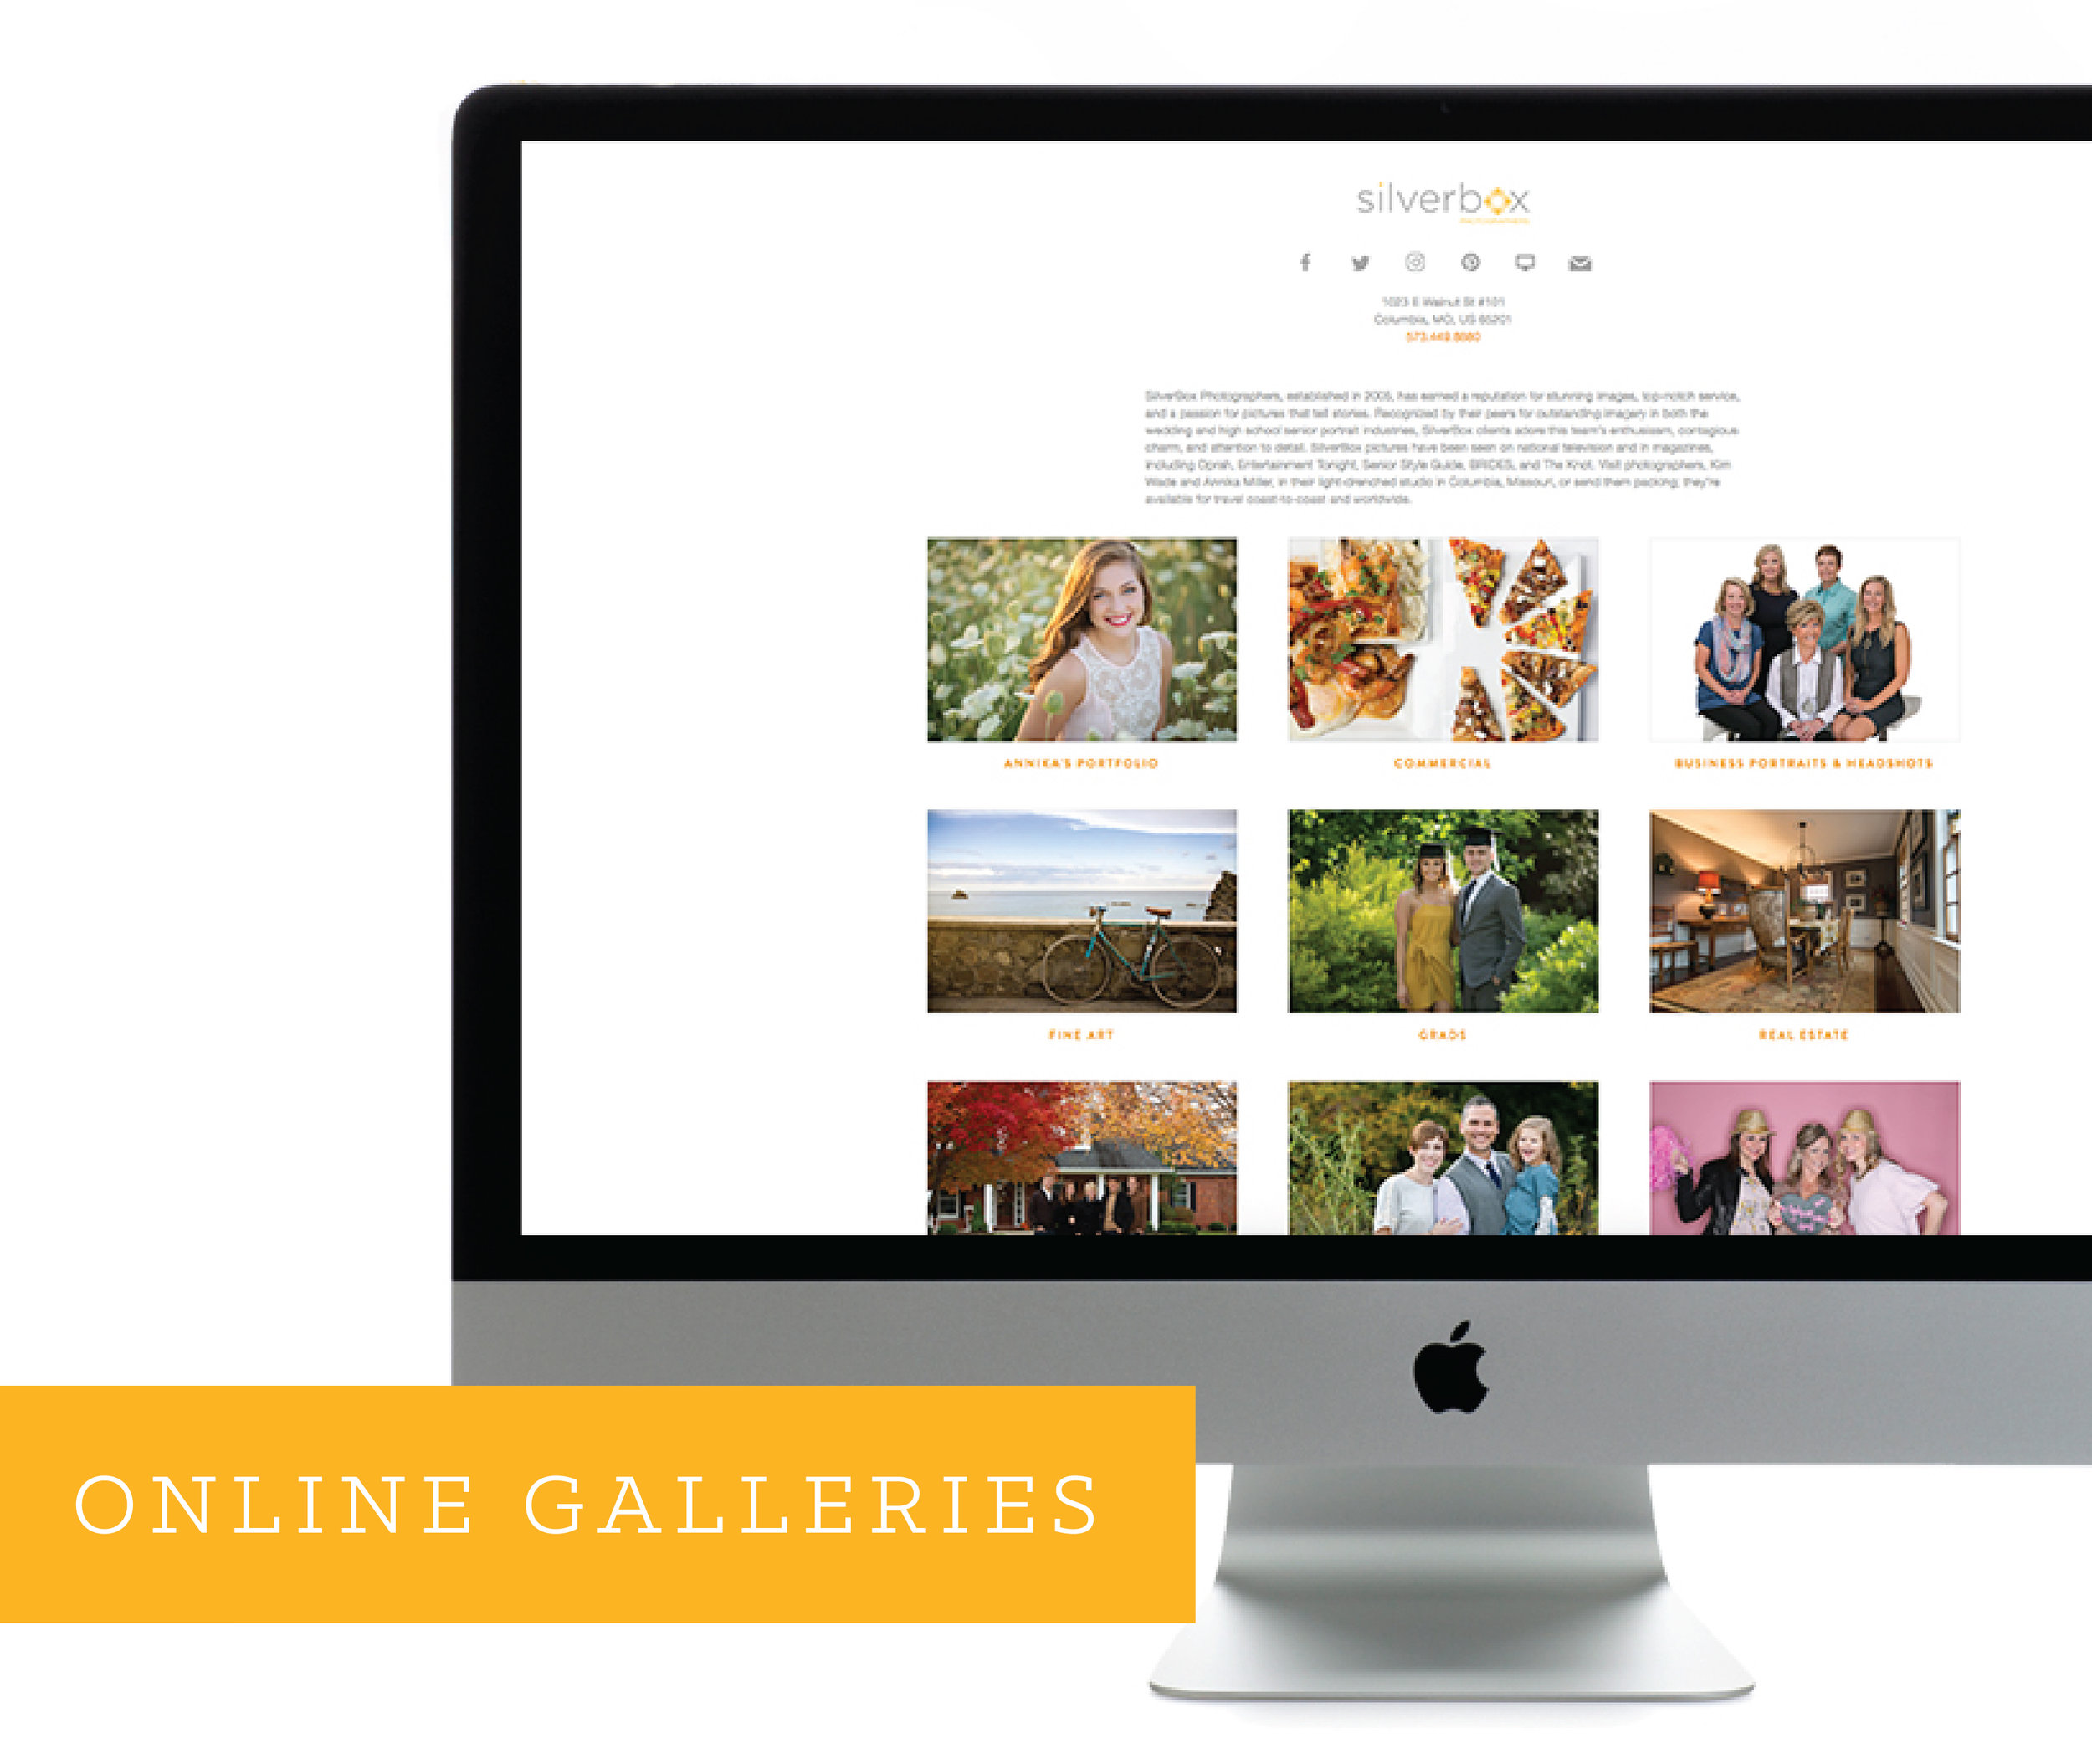 Senior Online Galleries